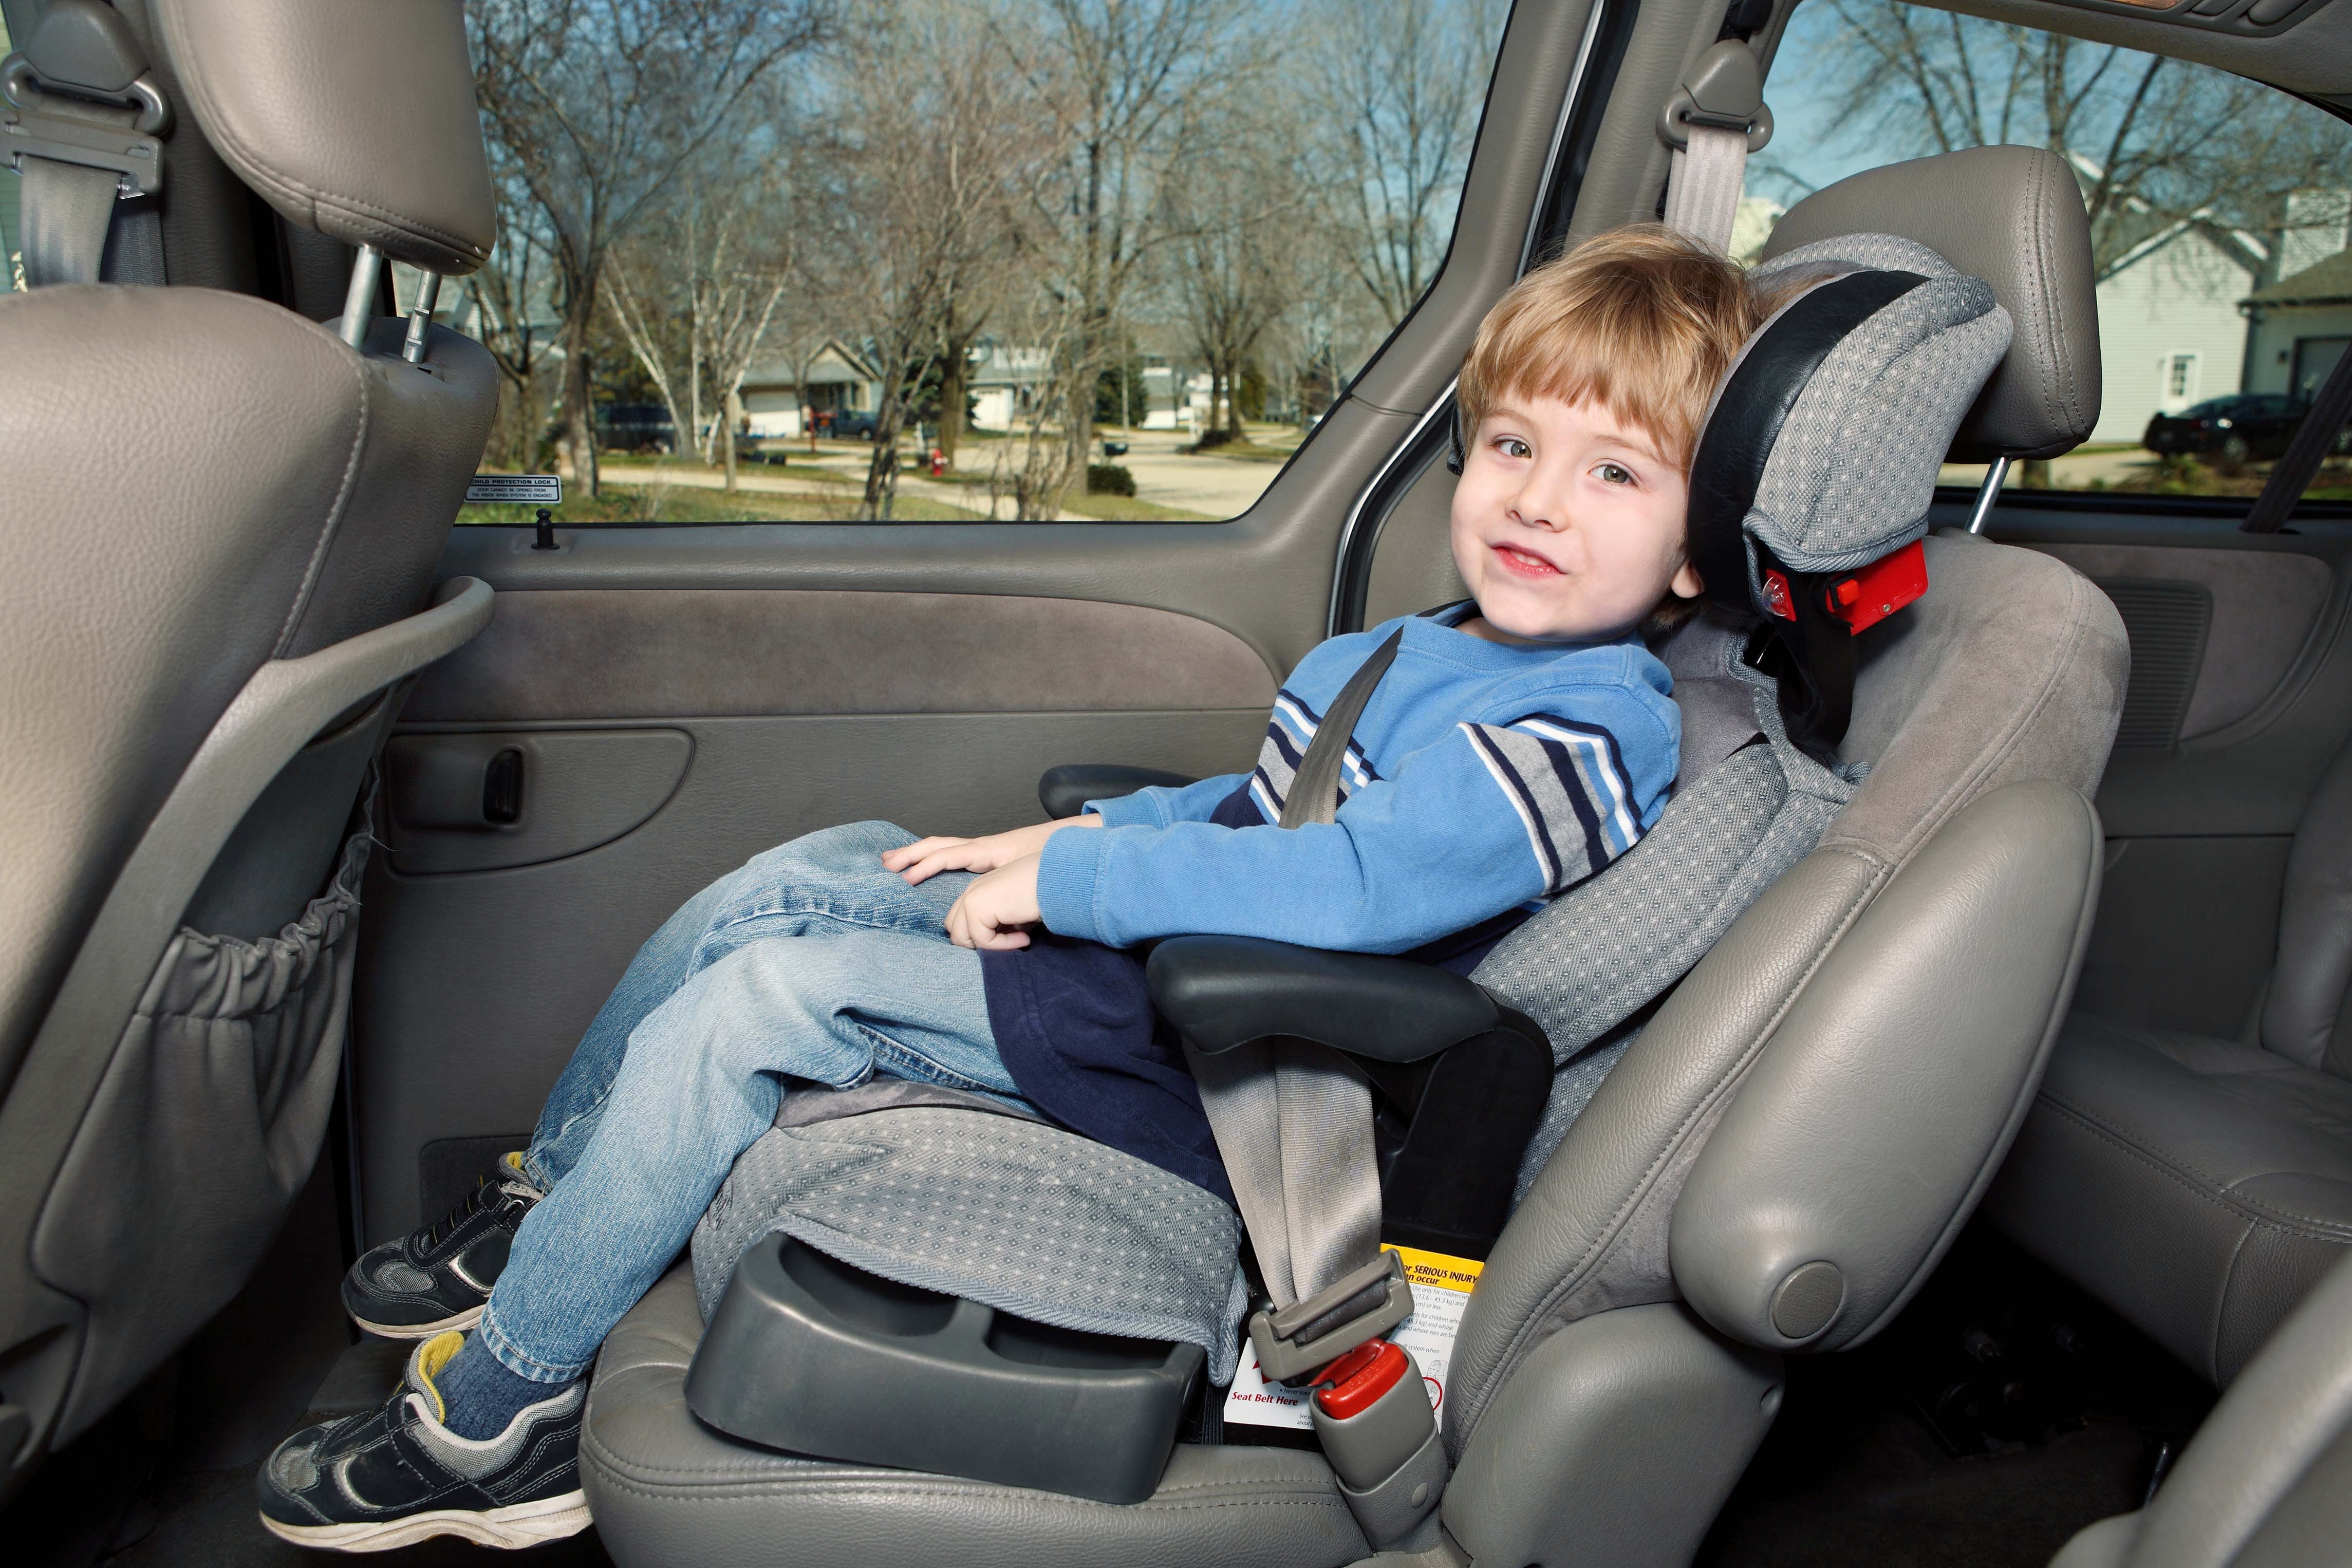 A Booster Seat: How to Know if Your Child Is Ready